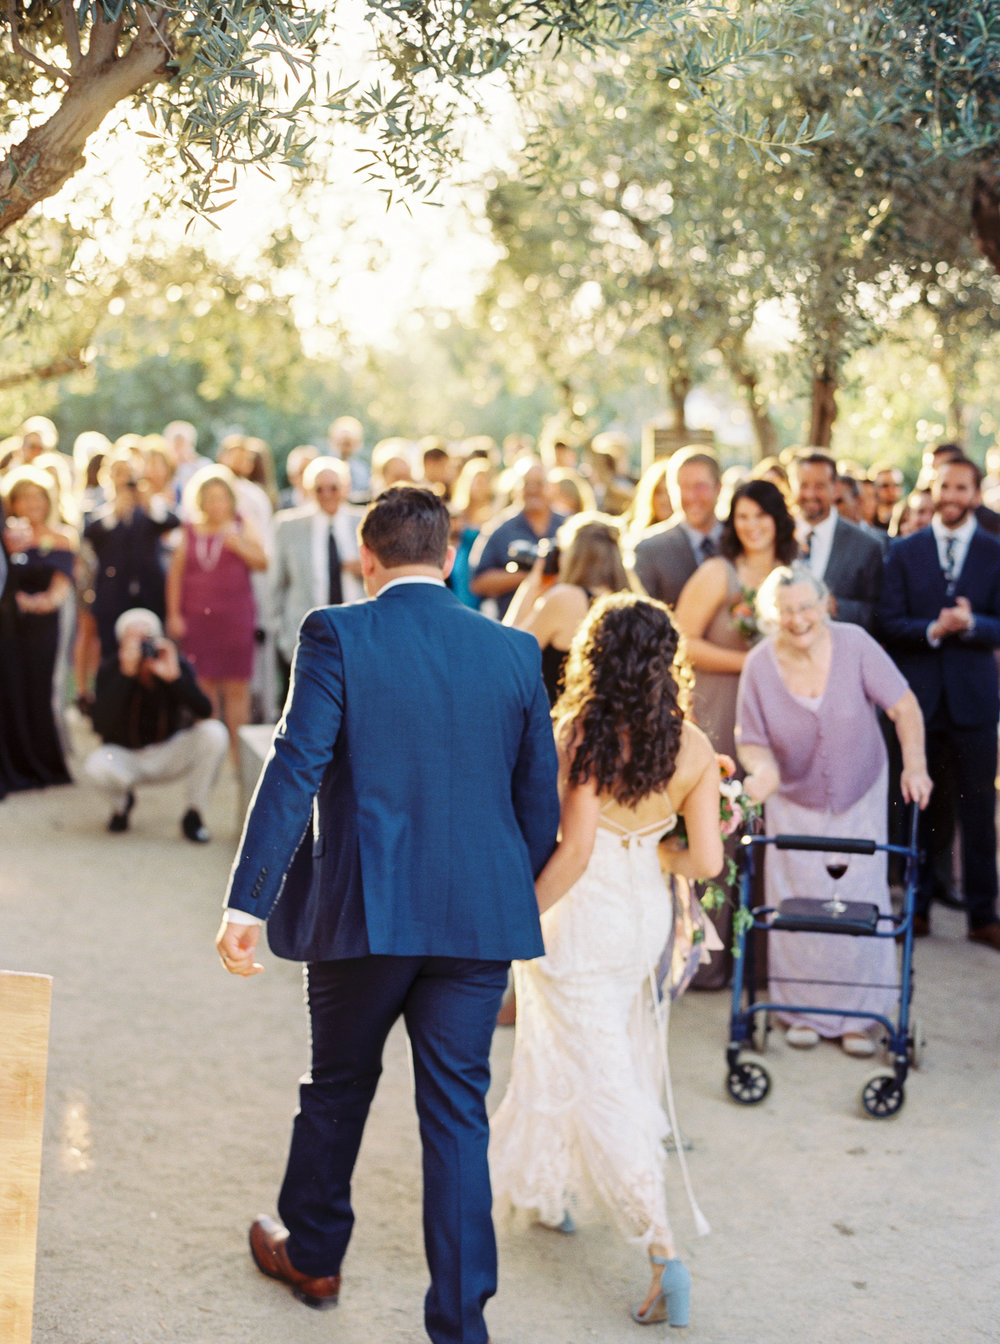 Biddle Ranch wedding-135.jpg